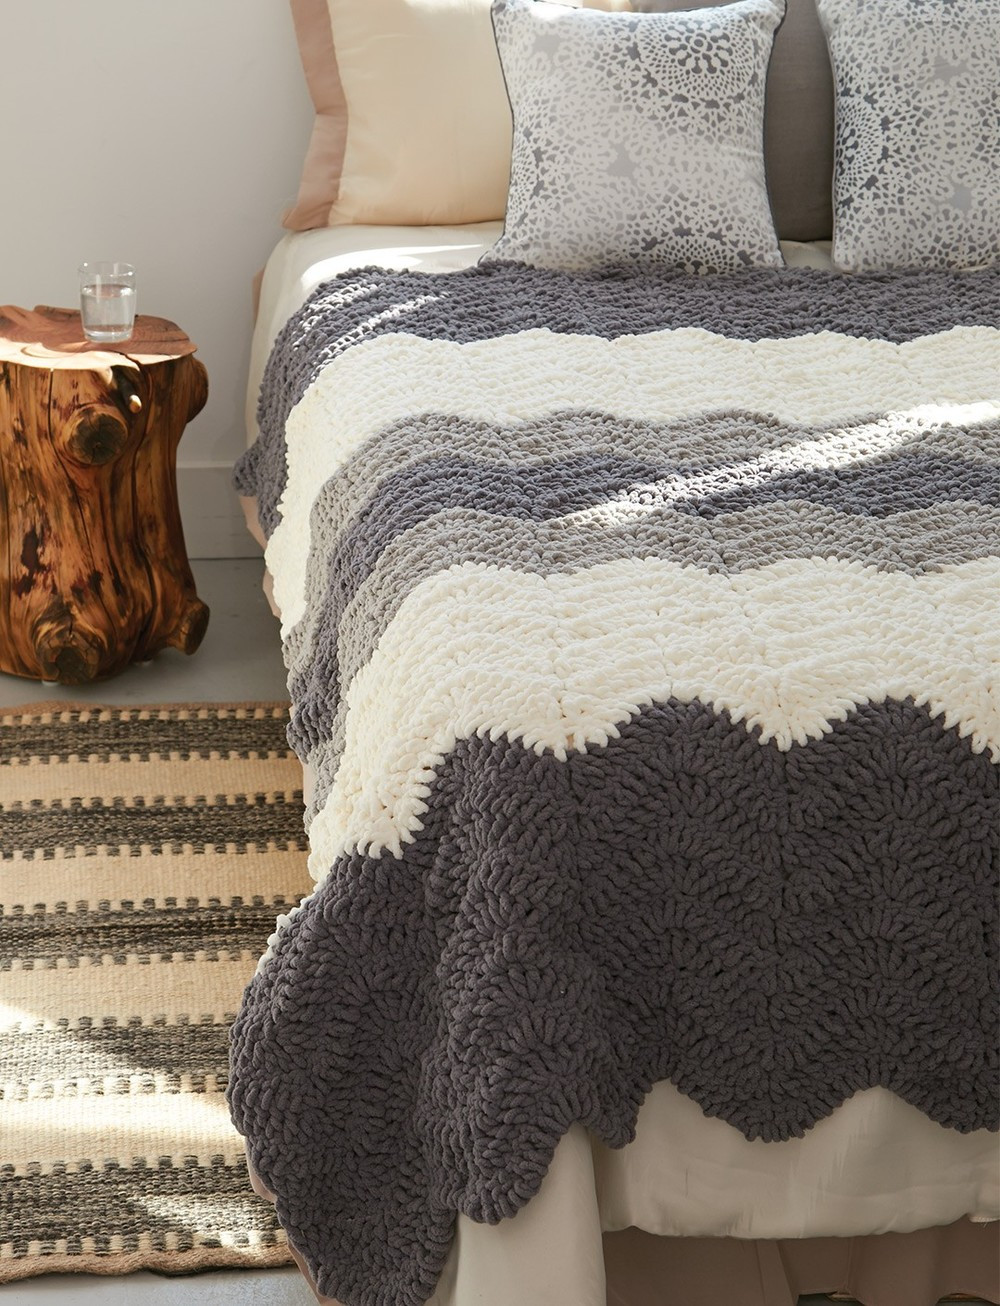 Easy Crochet Throw Patterns Unique Easy Everyday Crochet Blanket Of New 47 Pictures Easy Crochet Throw Patterns